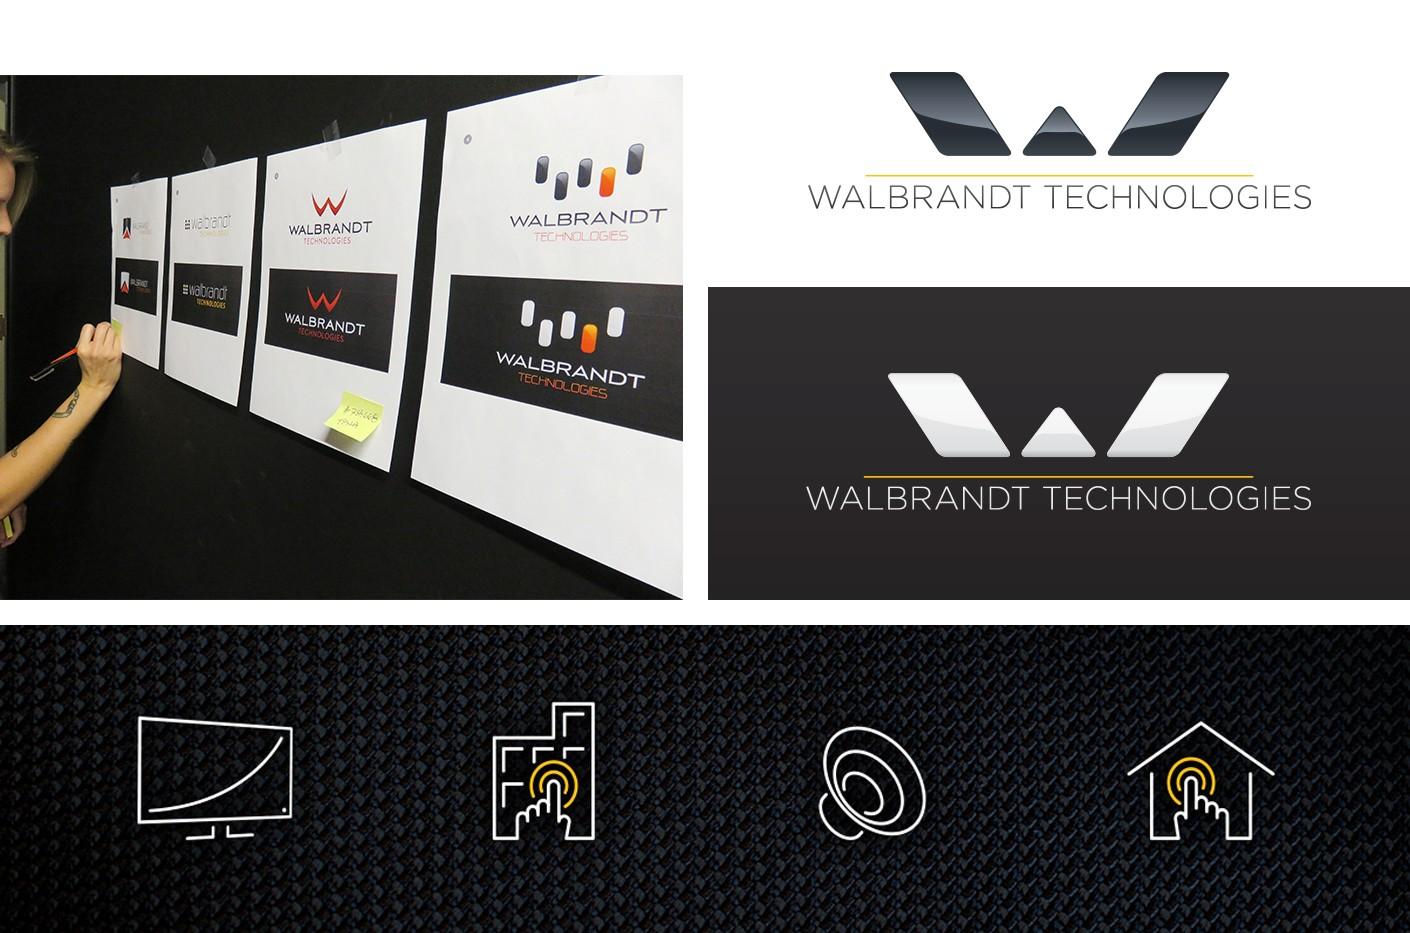 Our brand development process included designing iconology and environmental graphics for Walbrandt's showroom.